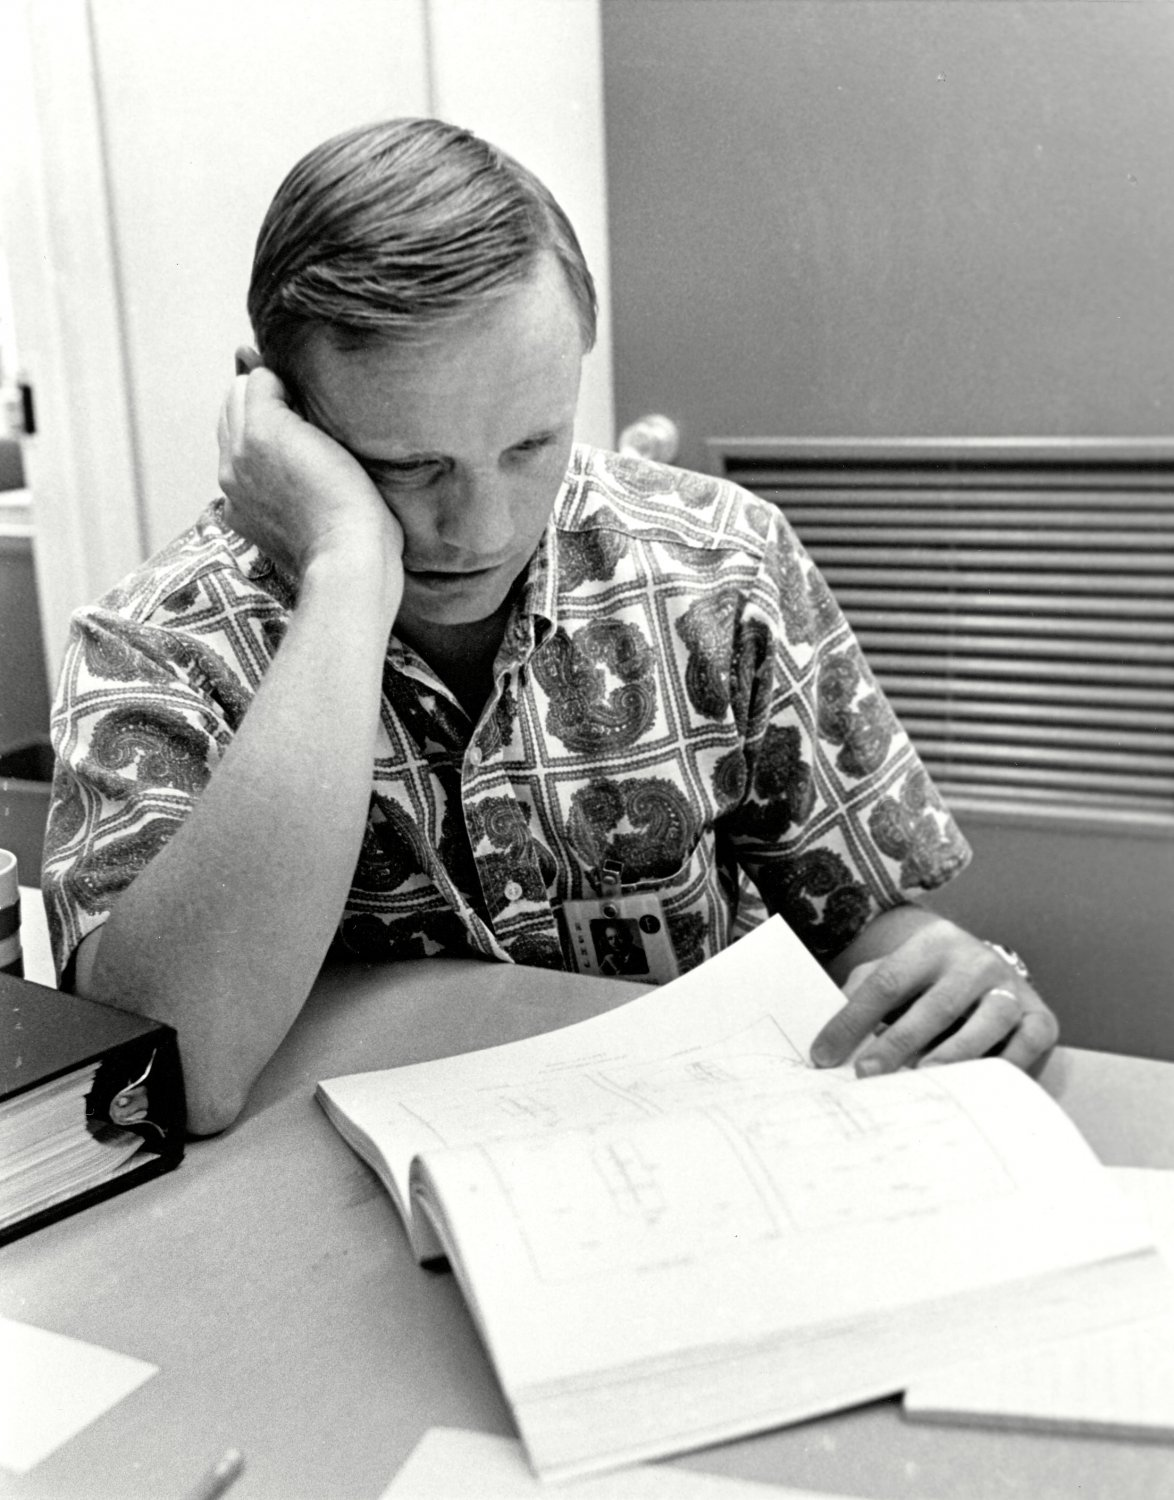 ASTRONAUT NEIL ARMSTRONG REVIEWS APOLLO 11 FLIGHT PLAN 8X10 NASA PHOTO (BB-974)